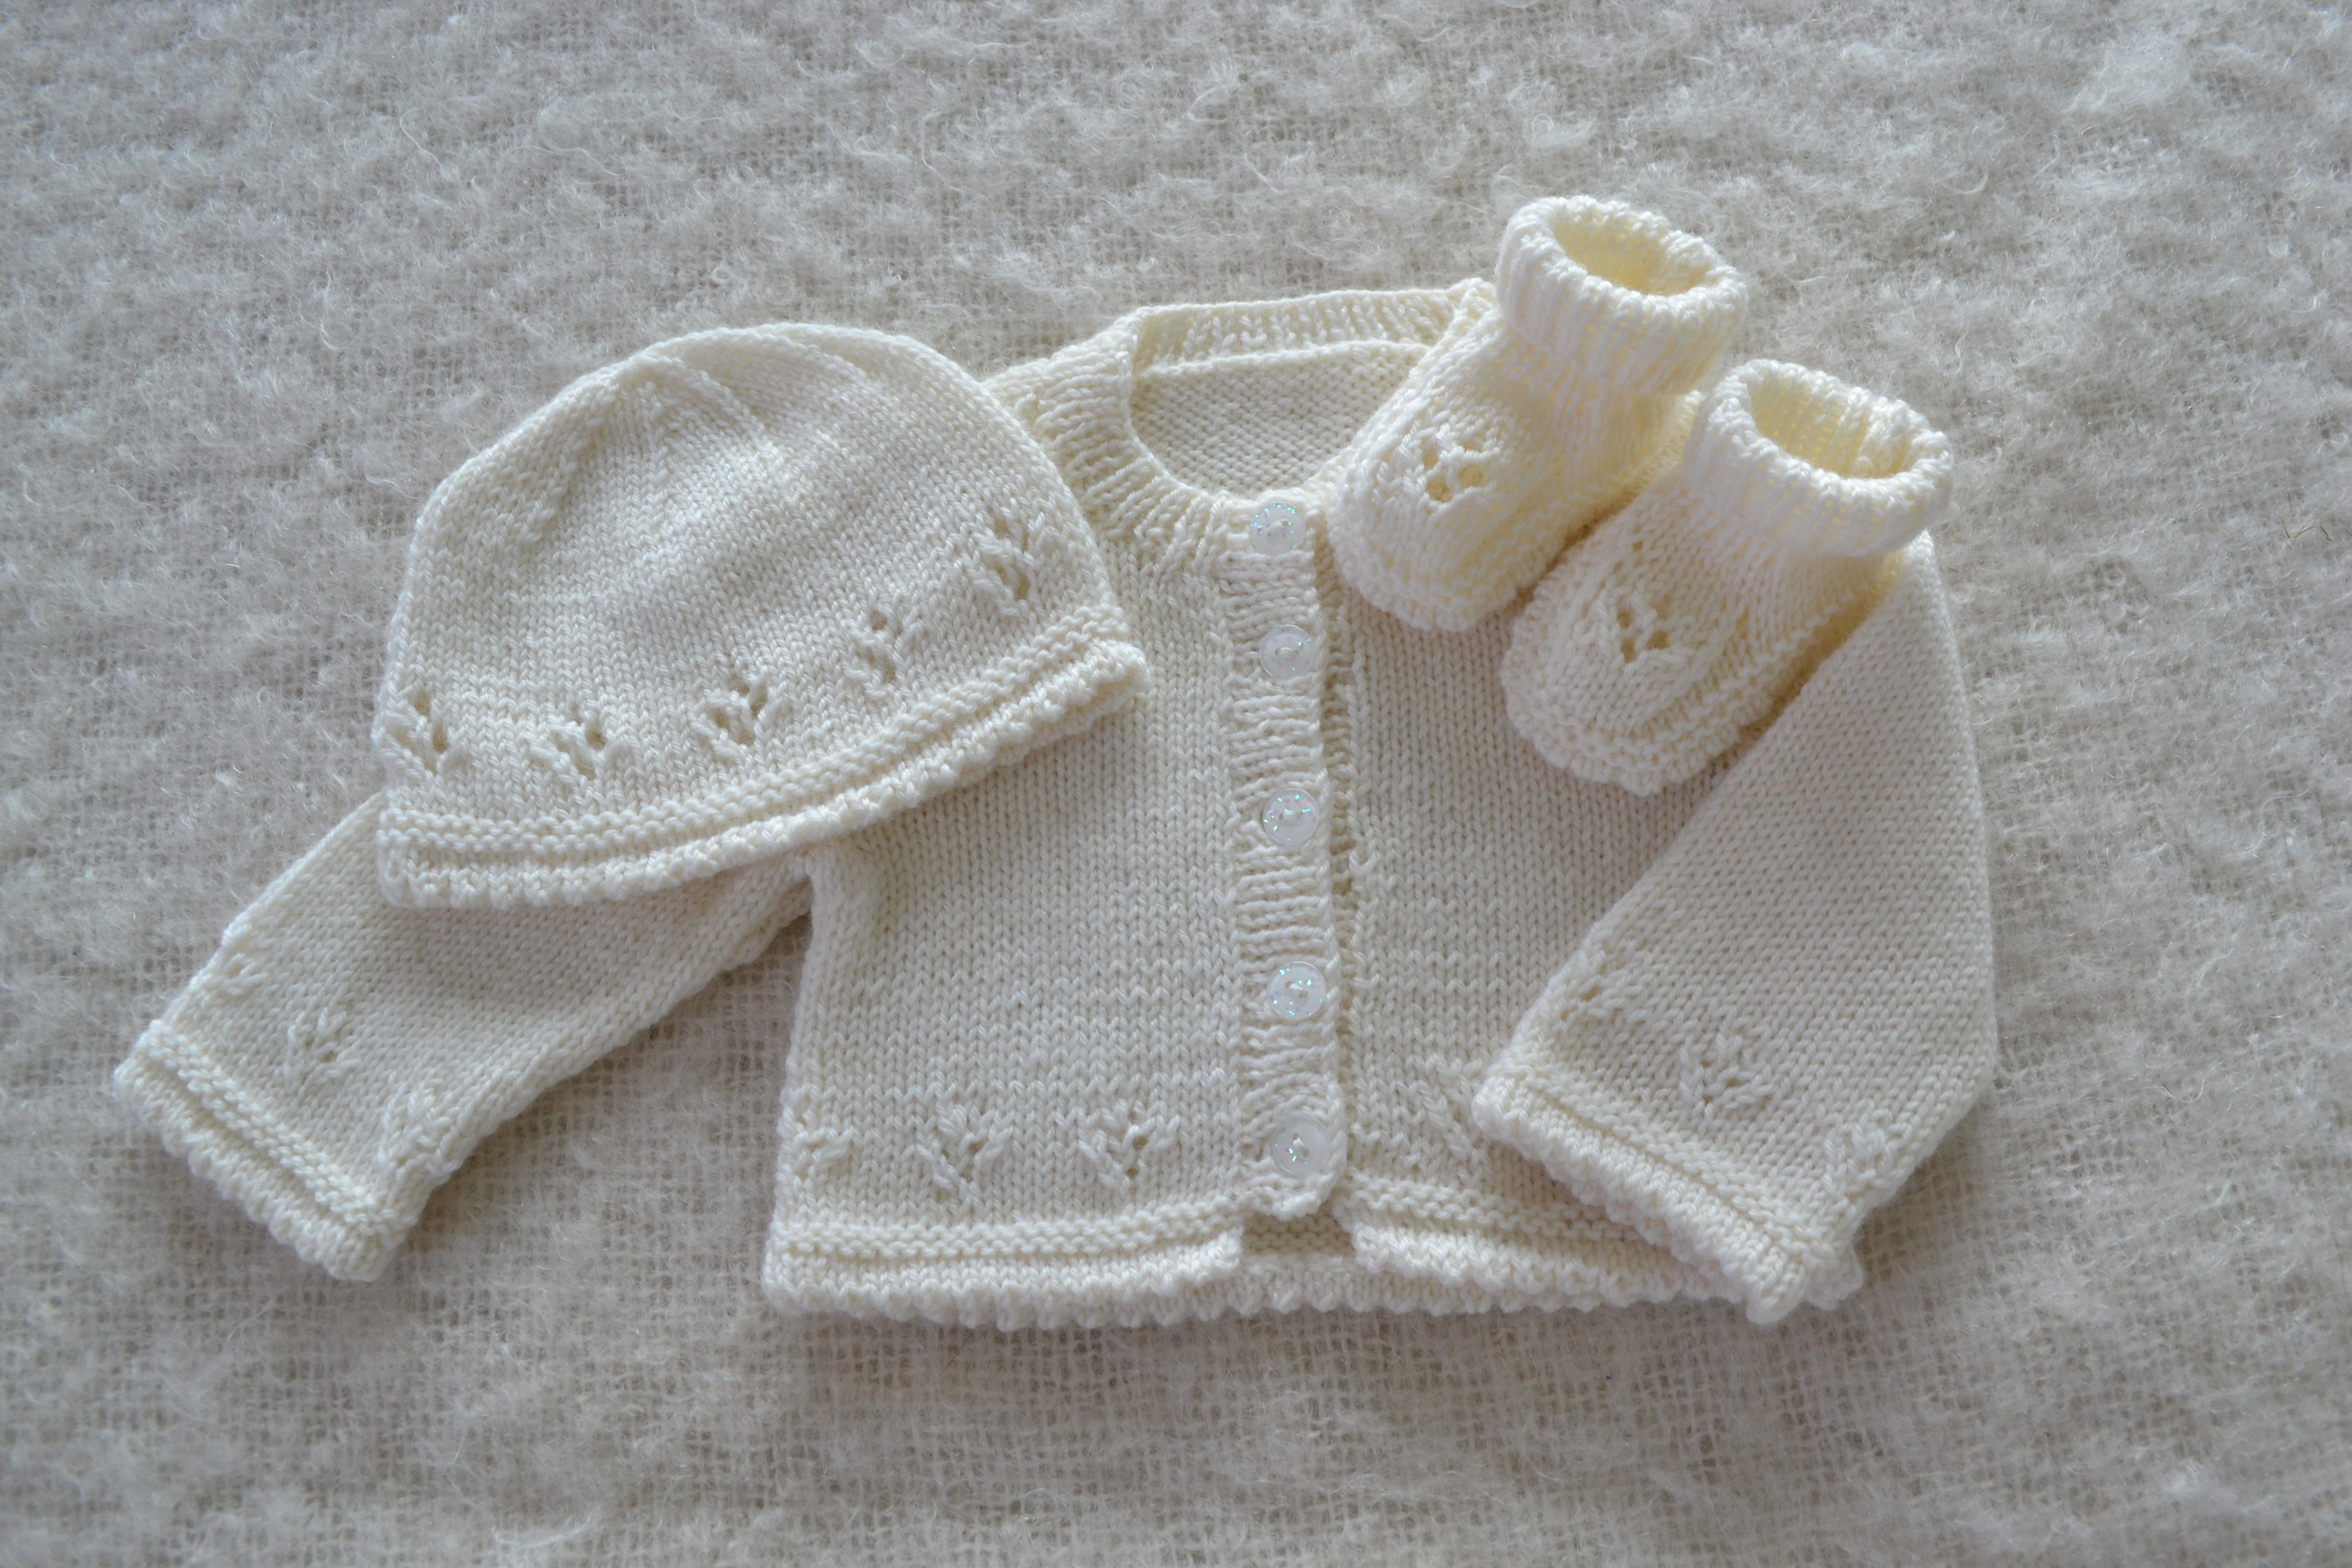 Double Knitting Baby Patterns Knitting Ba Beanies For Beginners Tags Ba Beanie Hat Knitting